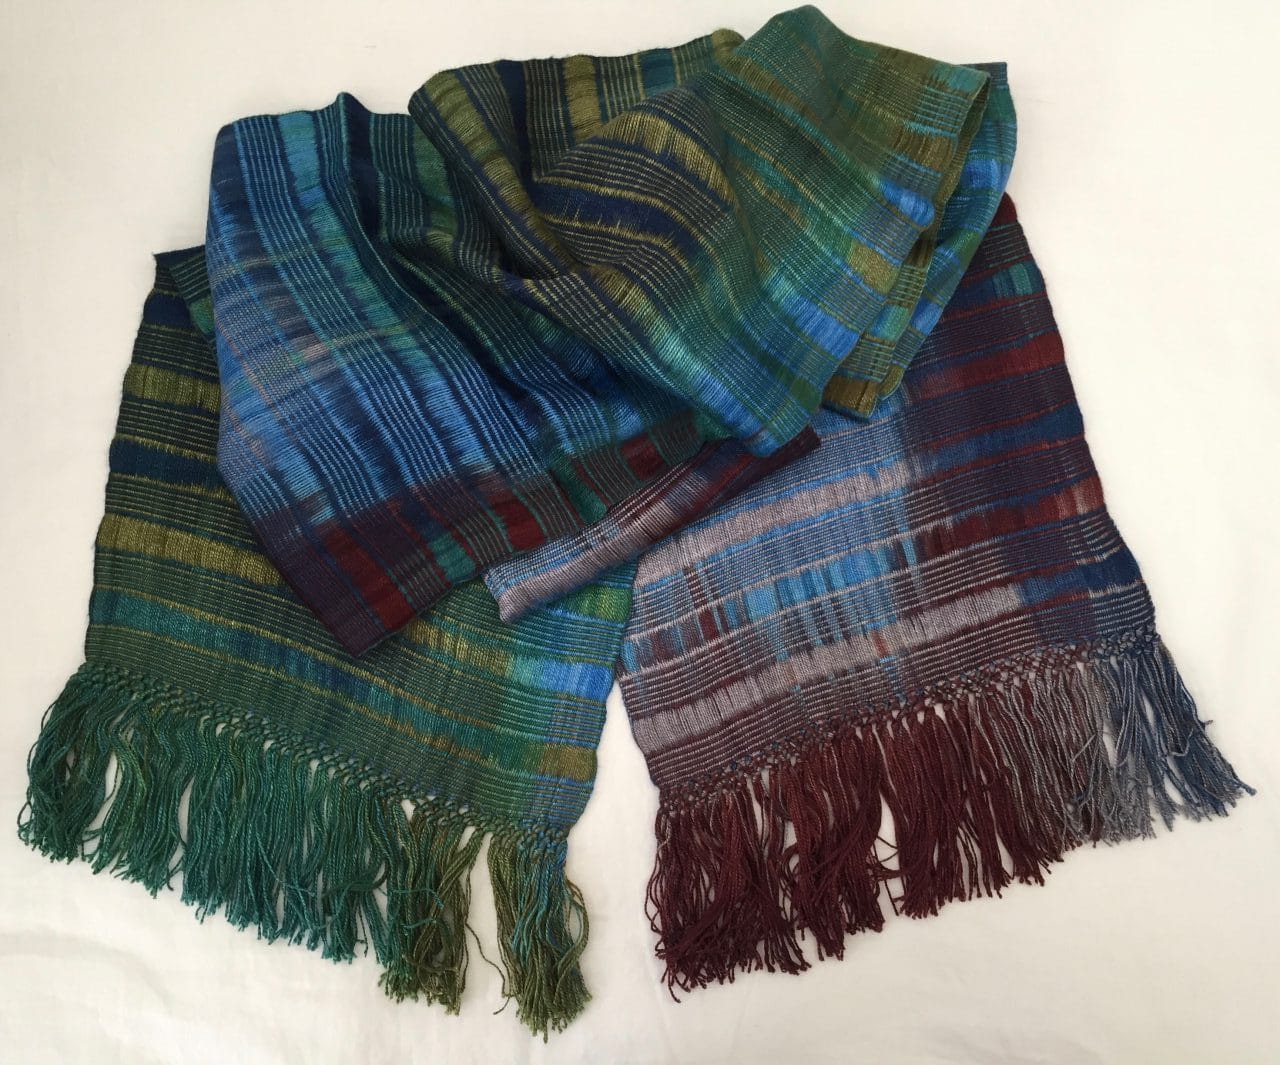 Blue, Green, Burgundy, Gray - Lightweight Bamboo Open-Weave Handwoven Scarf 8 x 68